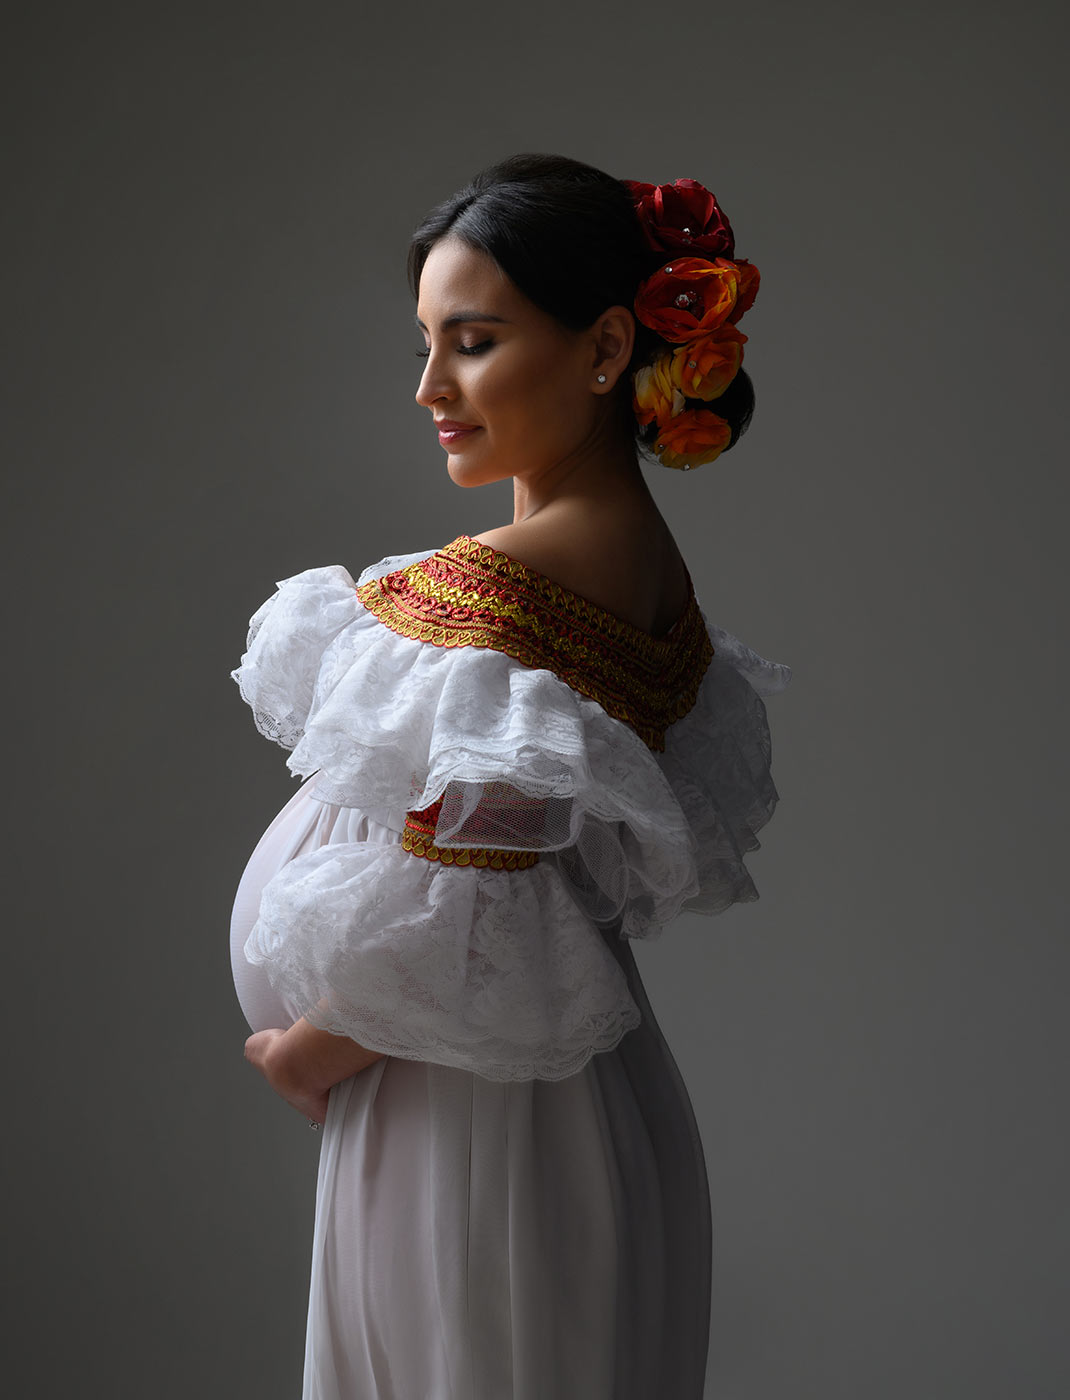 maternity portrait with colorful flowers and traditional Spanish lace ruffle dress